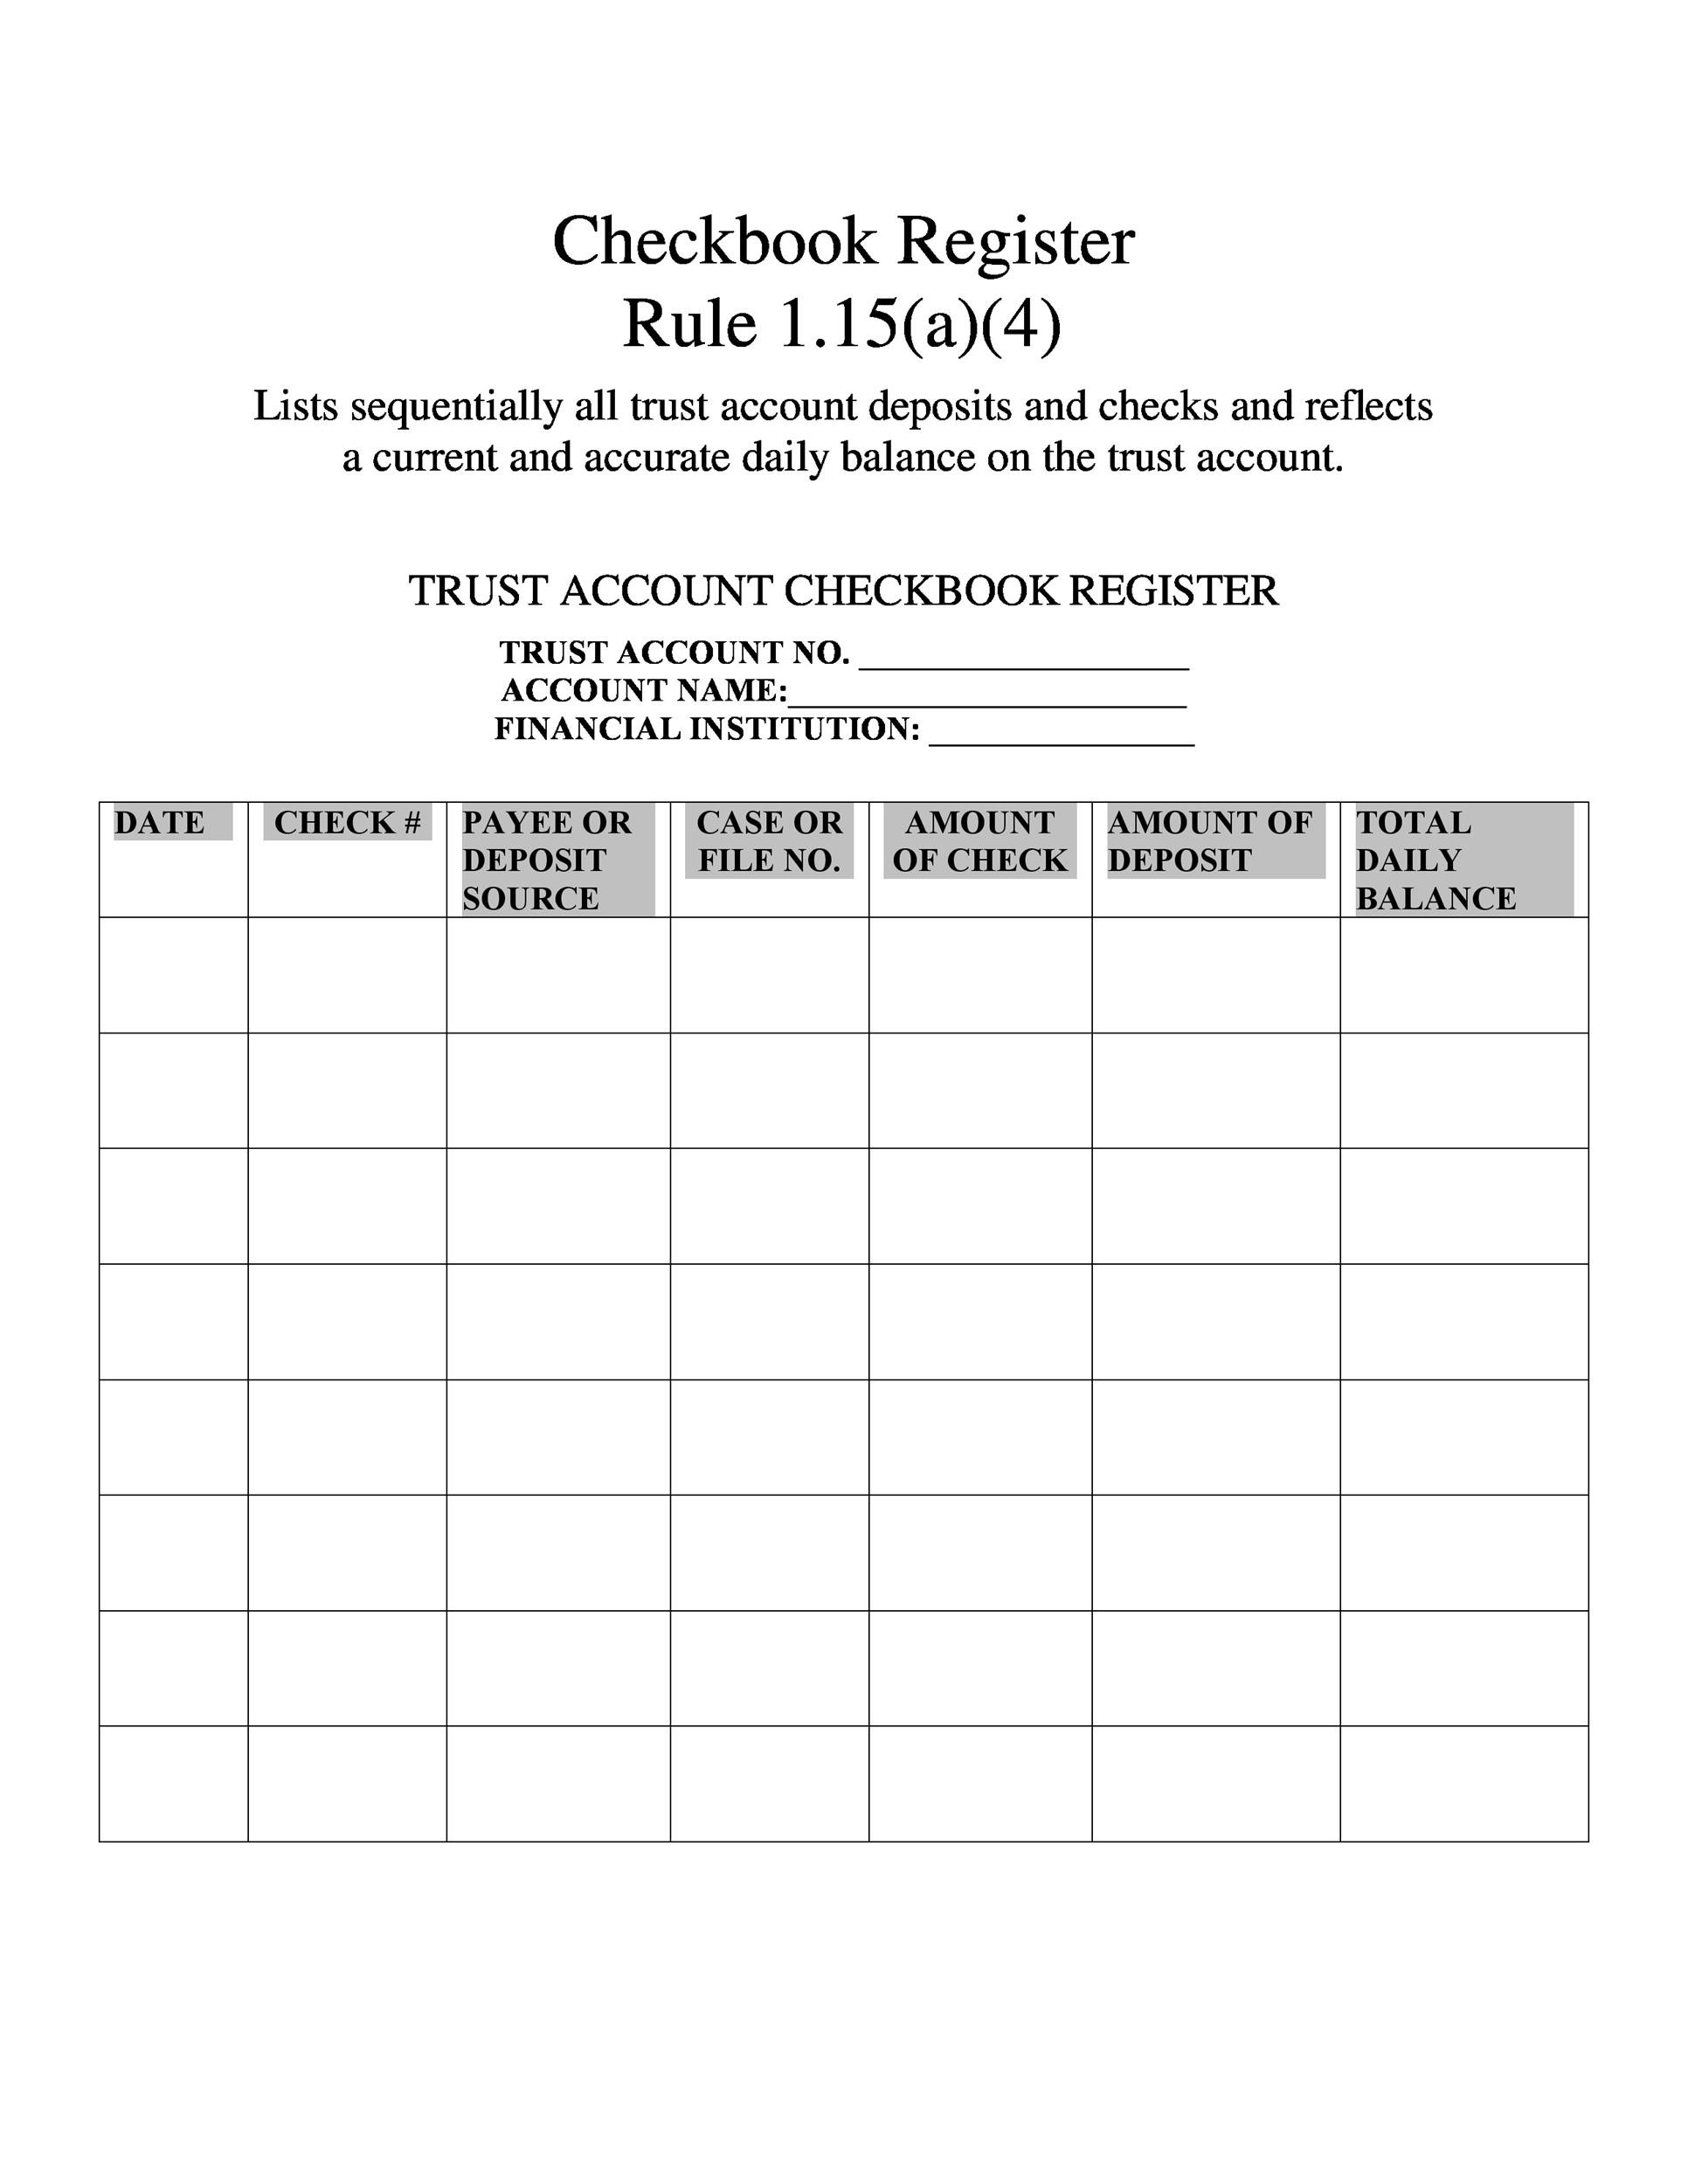 37 checkbook register templates 100 free printable template lab